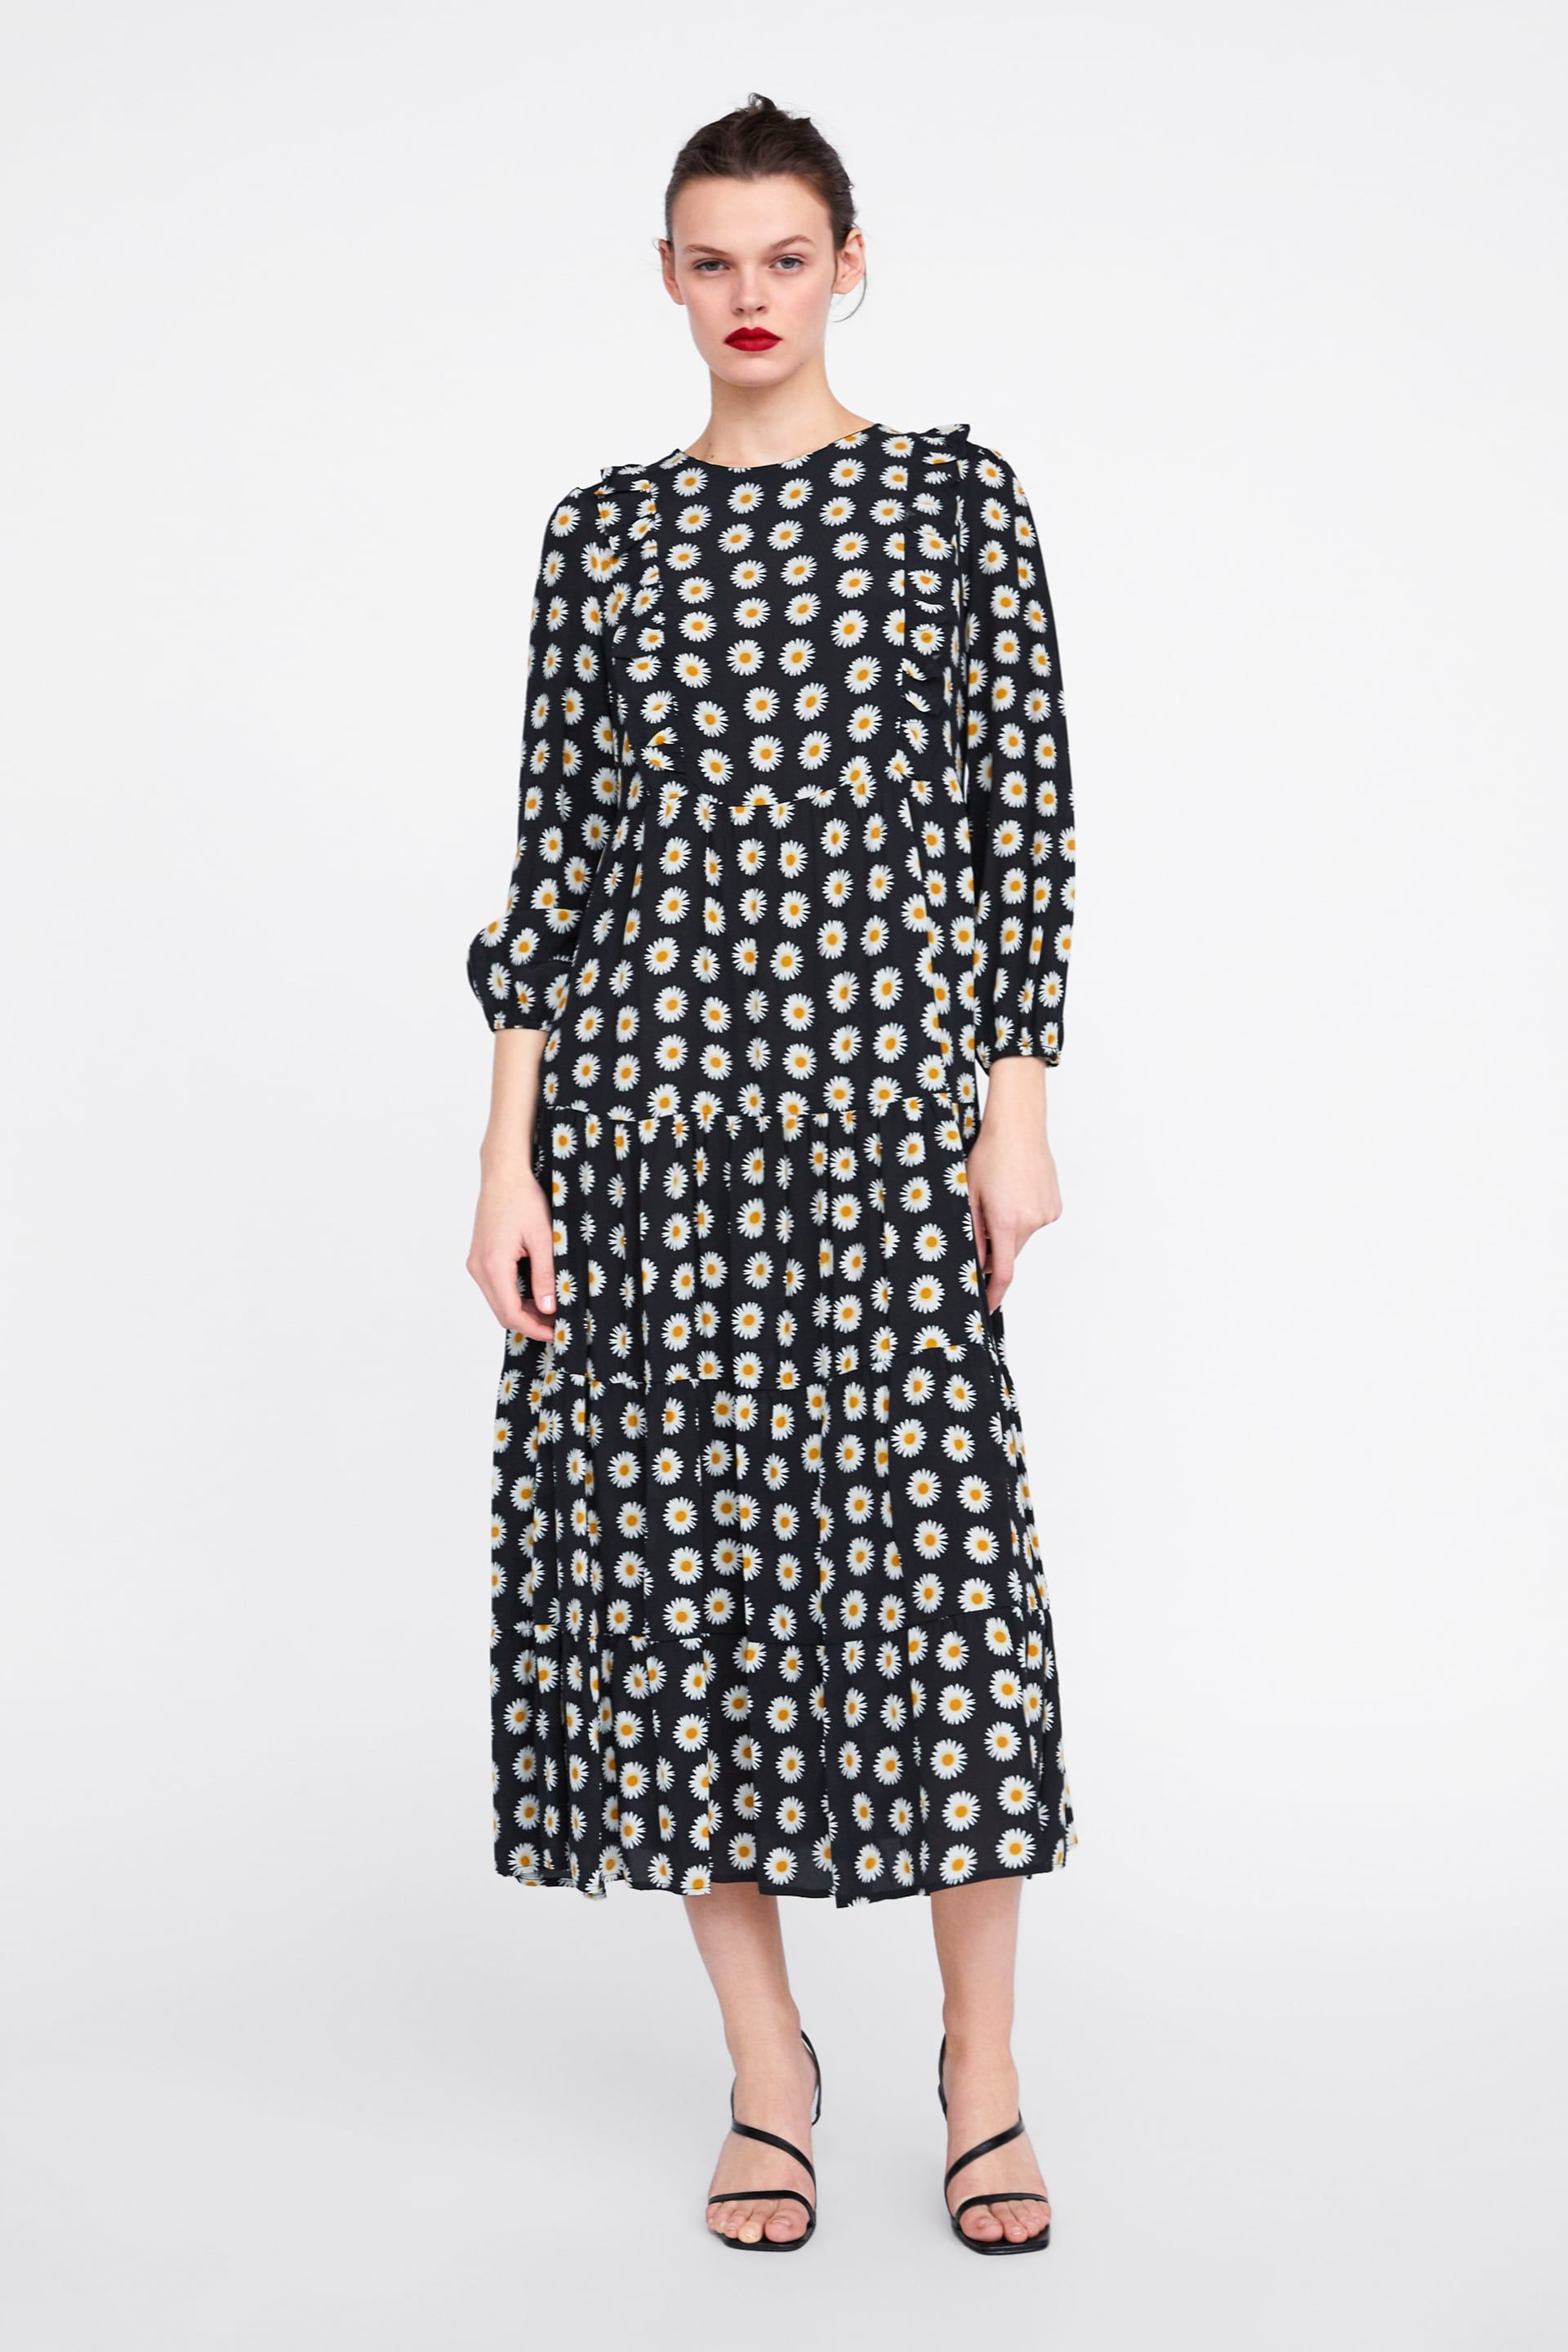 Ruffled Floral Print Dress View All Dresses Woman Zara South Africa Long Sleeve Floral Dress Floral Print Dress Print Dress